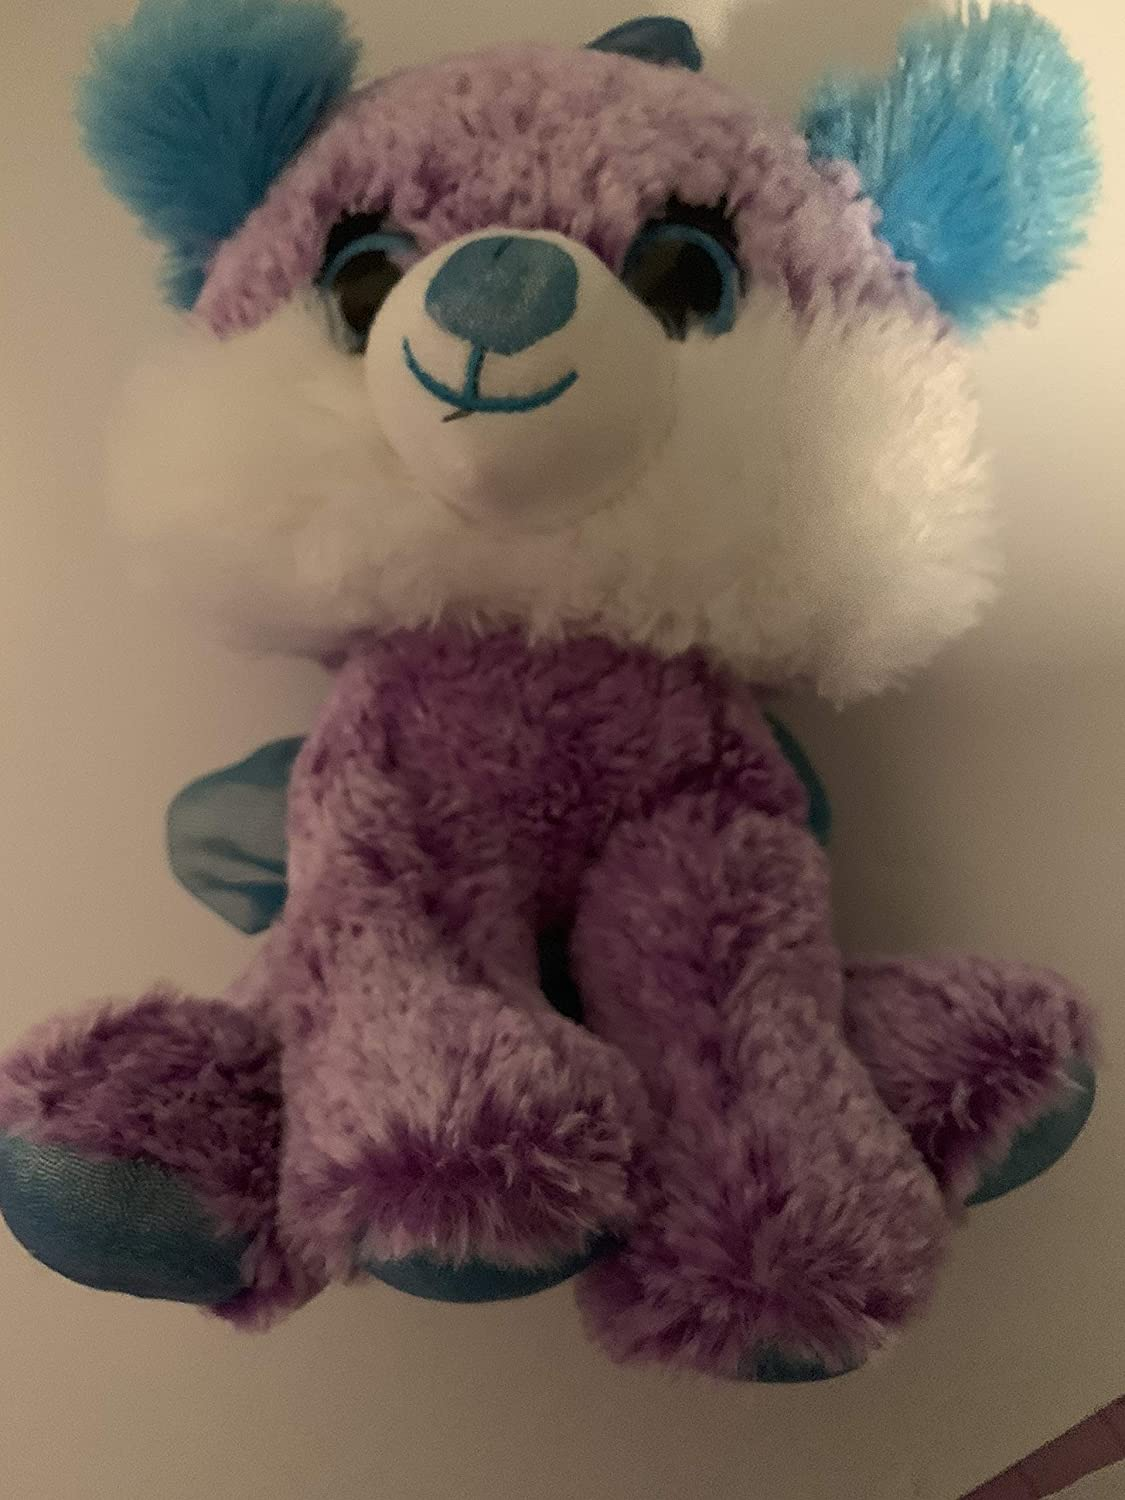 purple bear 2.5 lbs sensory toy washable weighted buddy Weighted stuffed animal